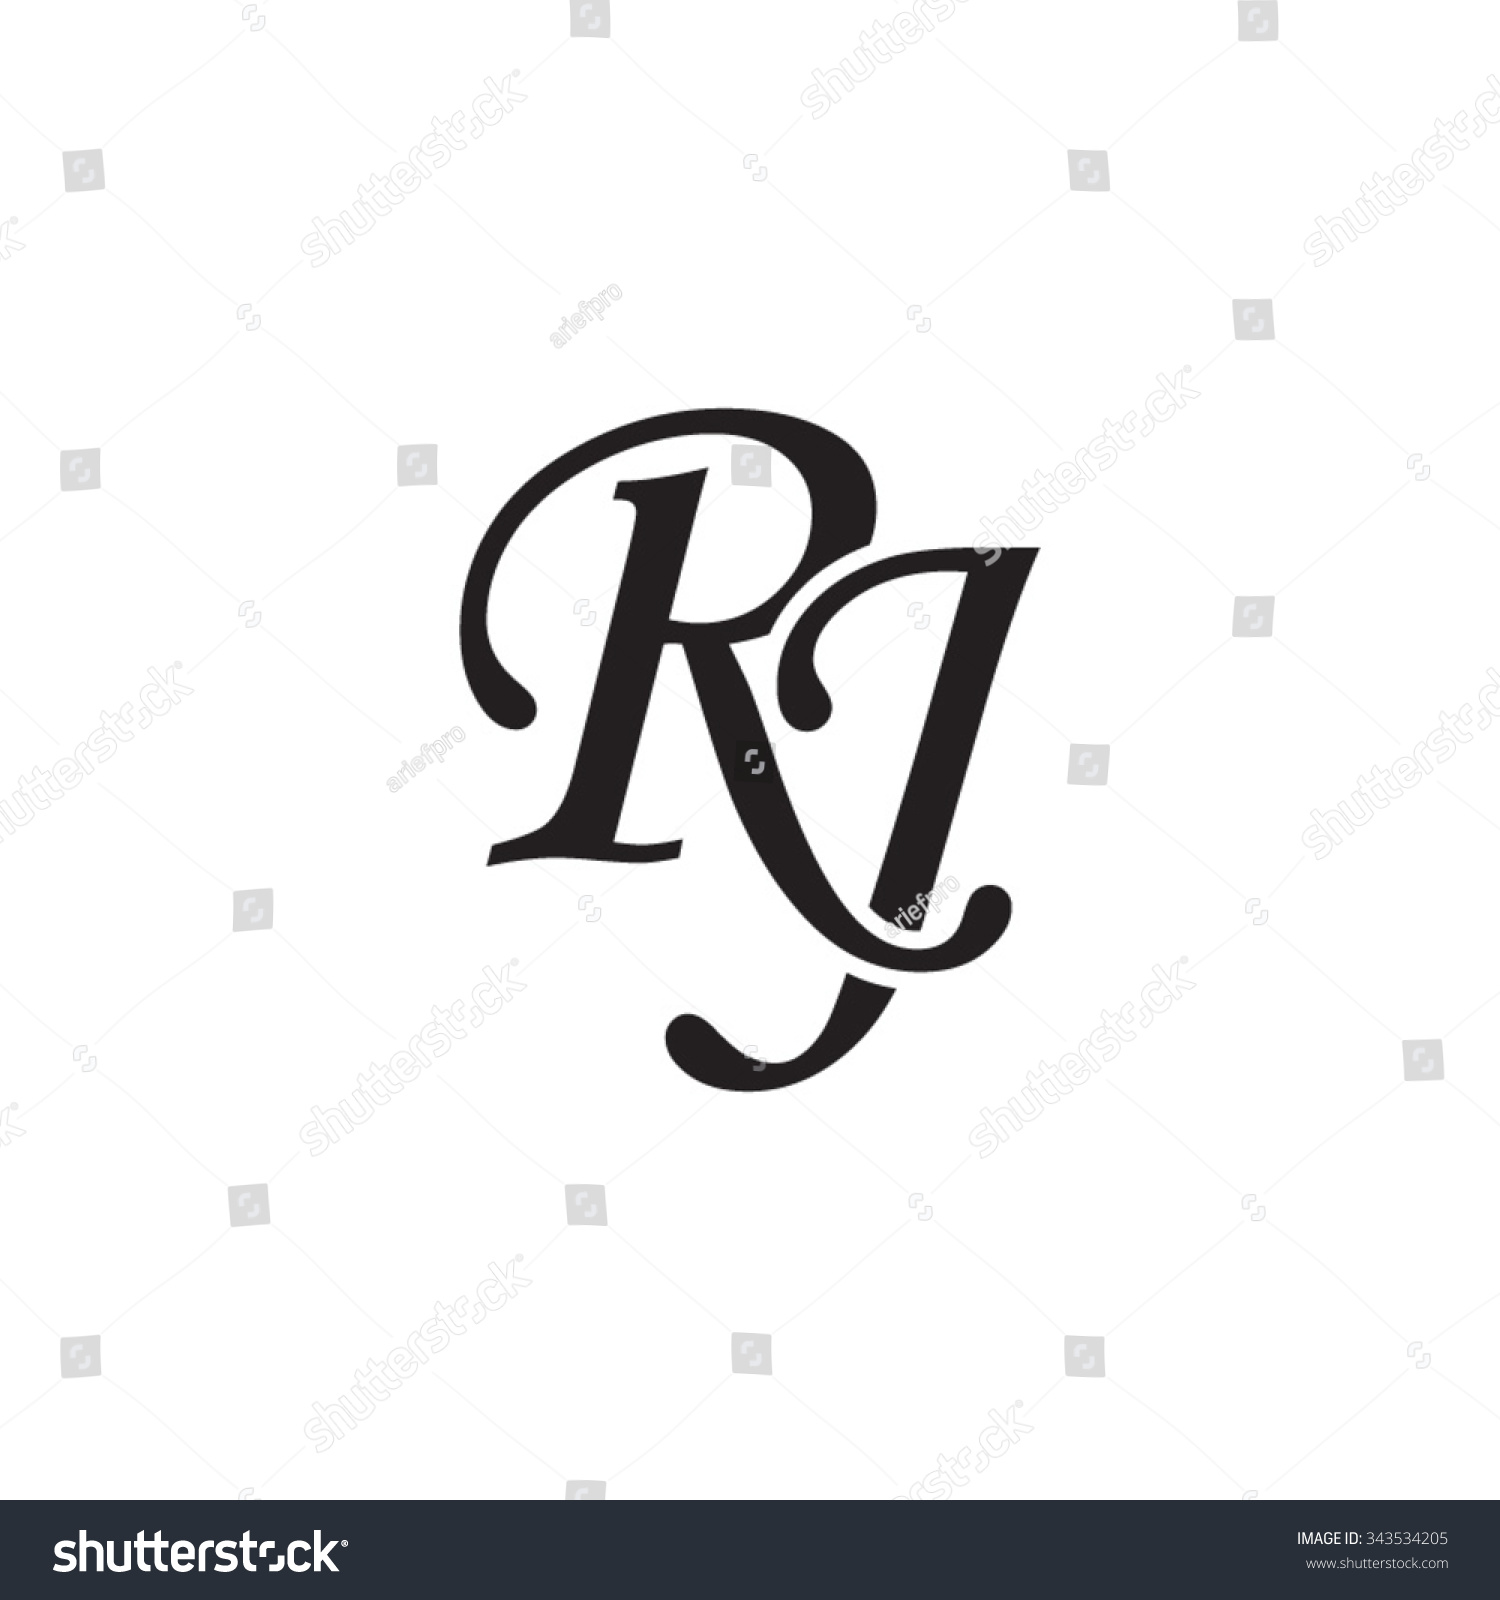 rj logo images www pixshark com images galleries with vector book cover vector book cover design